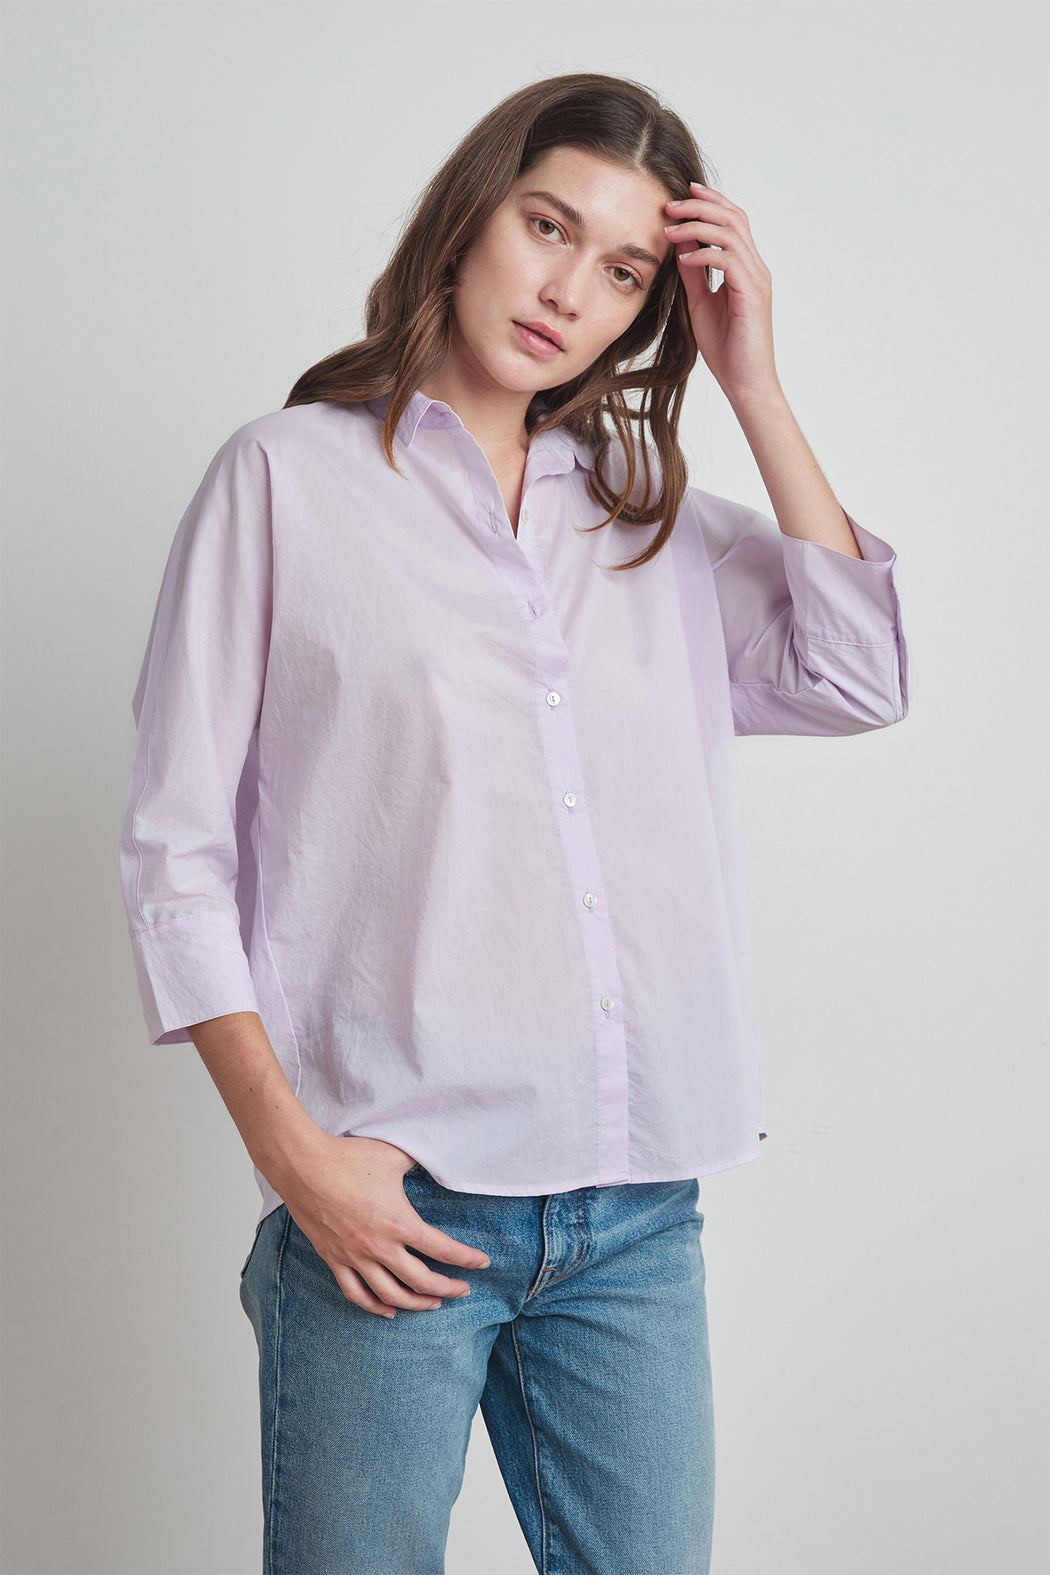 Velvet by Graham & Spencer Carey Woven Cotton Button Up Shirt in Lilac